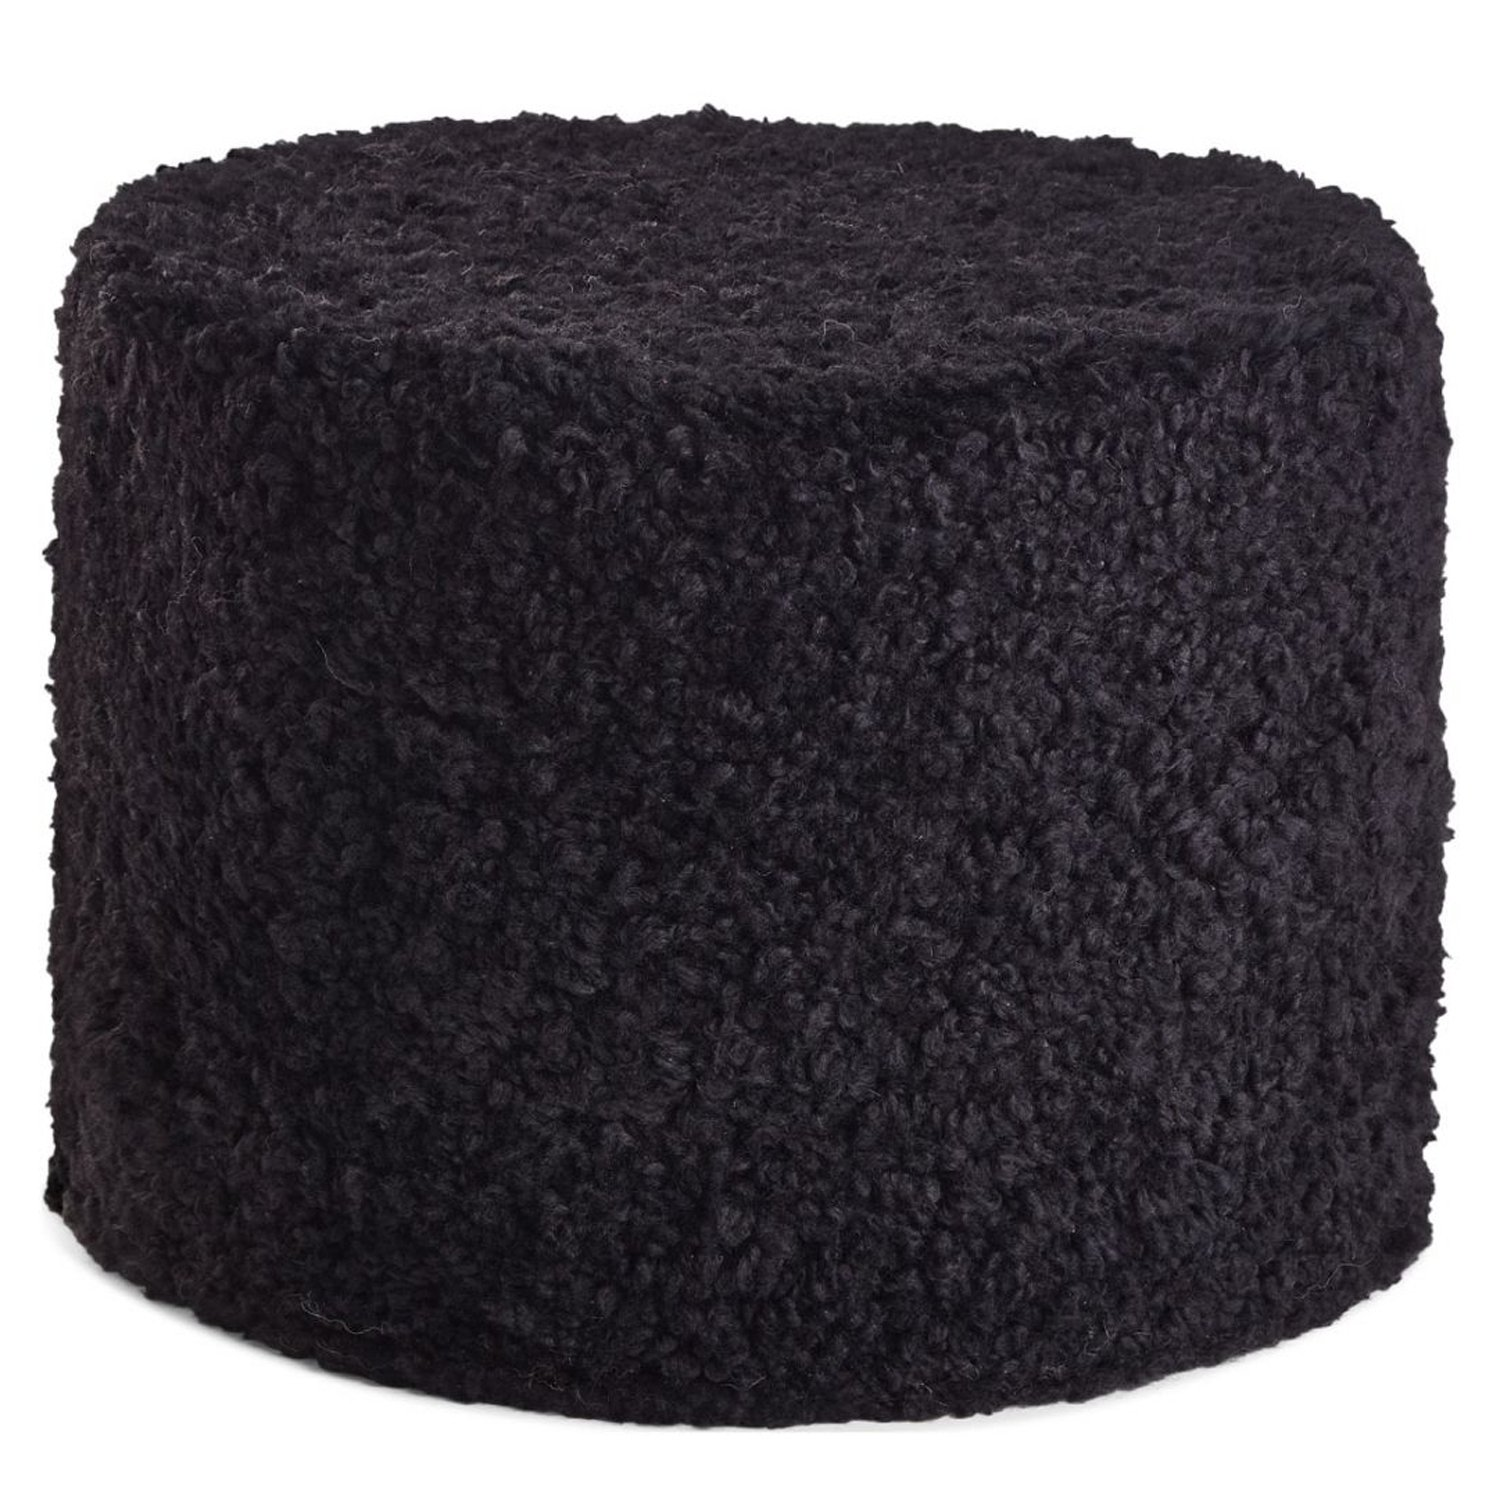 Natures Collection Pouf Echtfell Kurzwolle lockig Black Neuseeland Schaffell